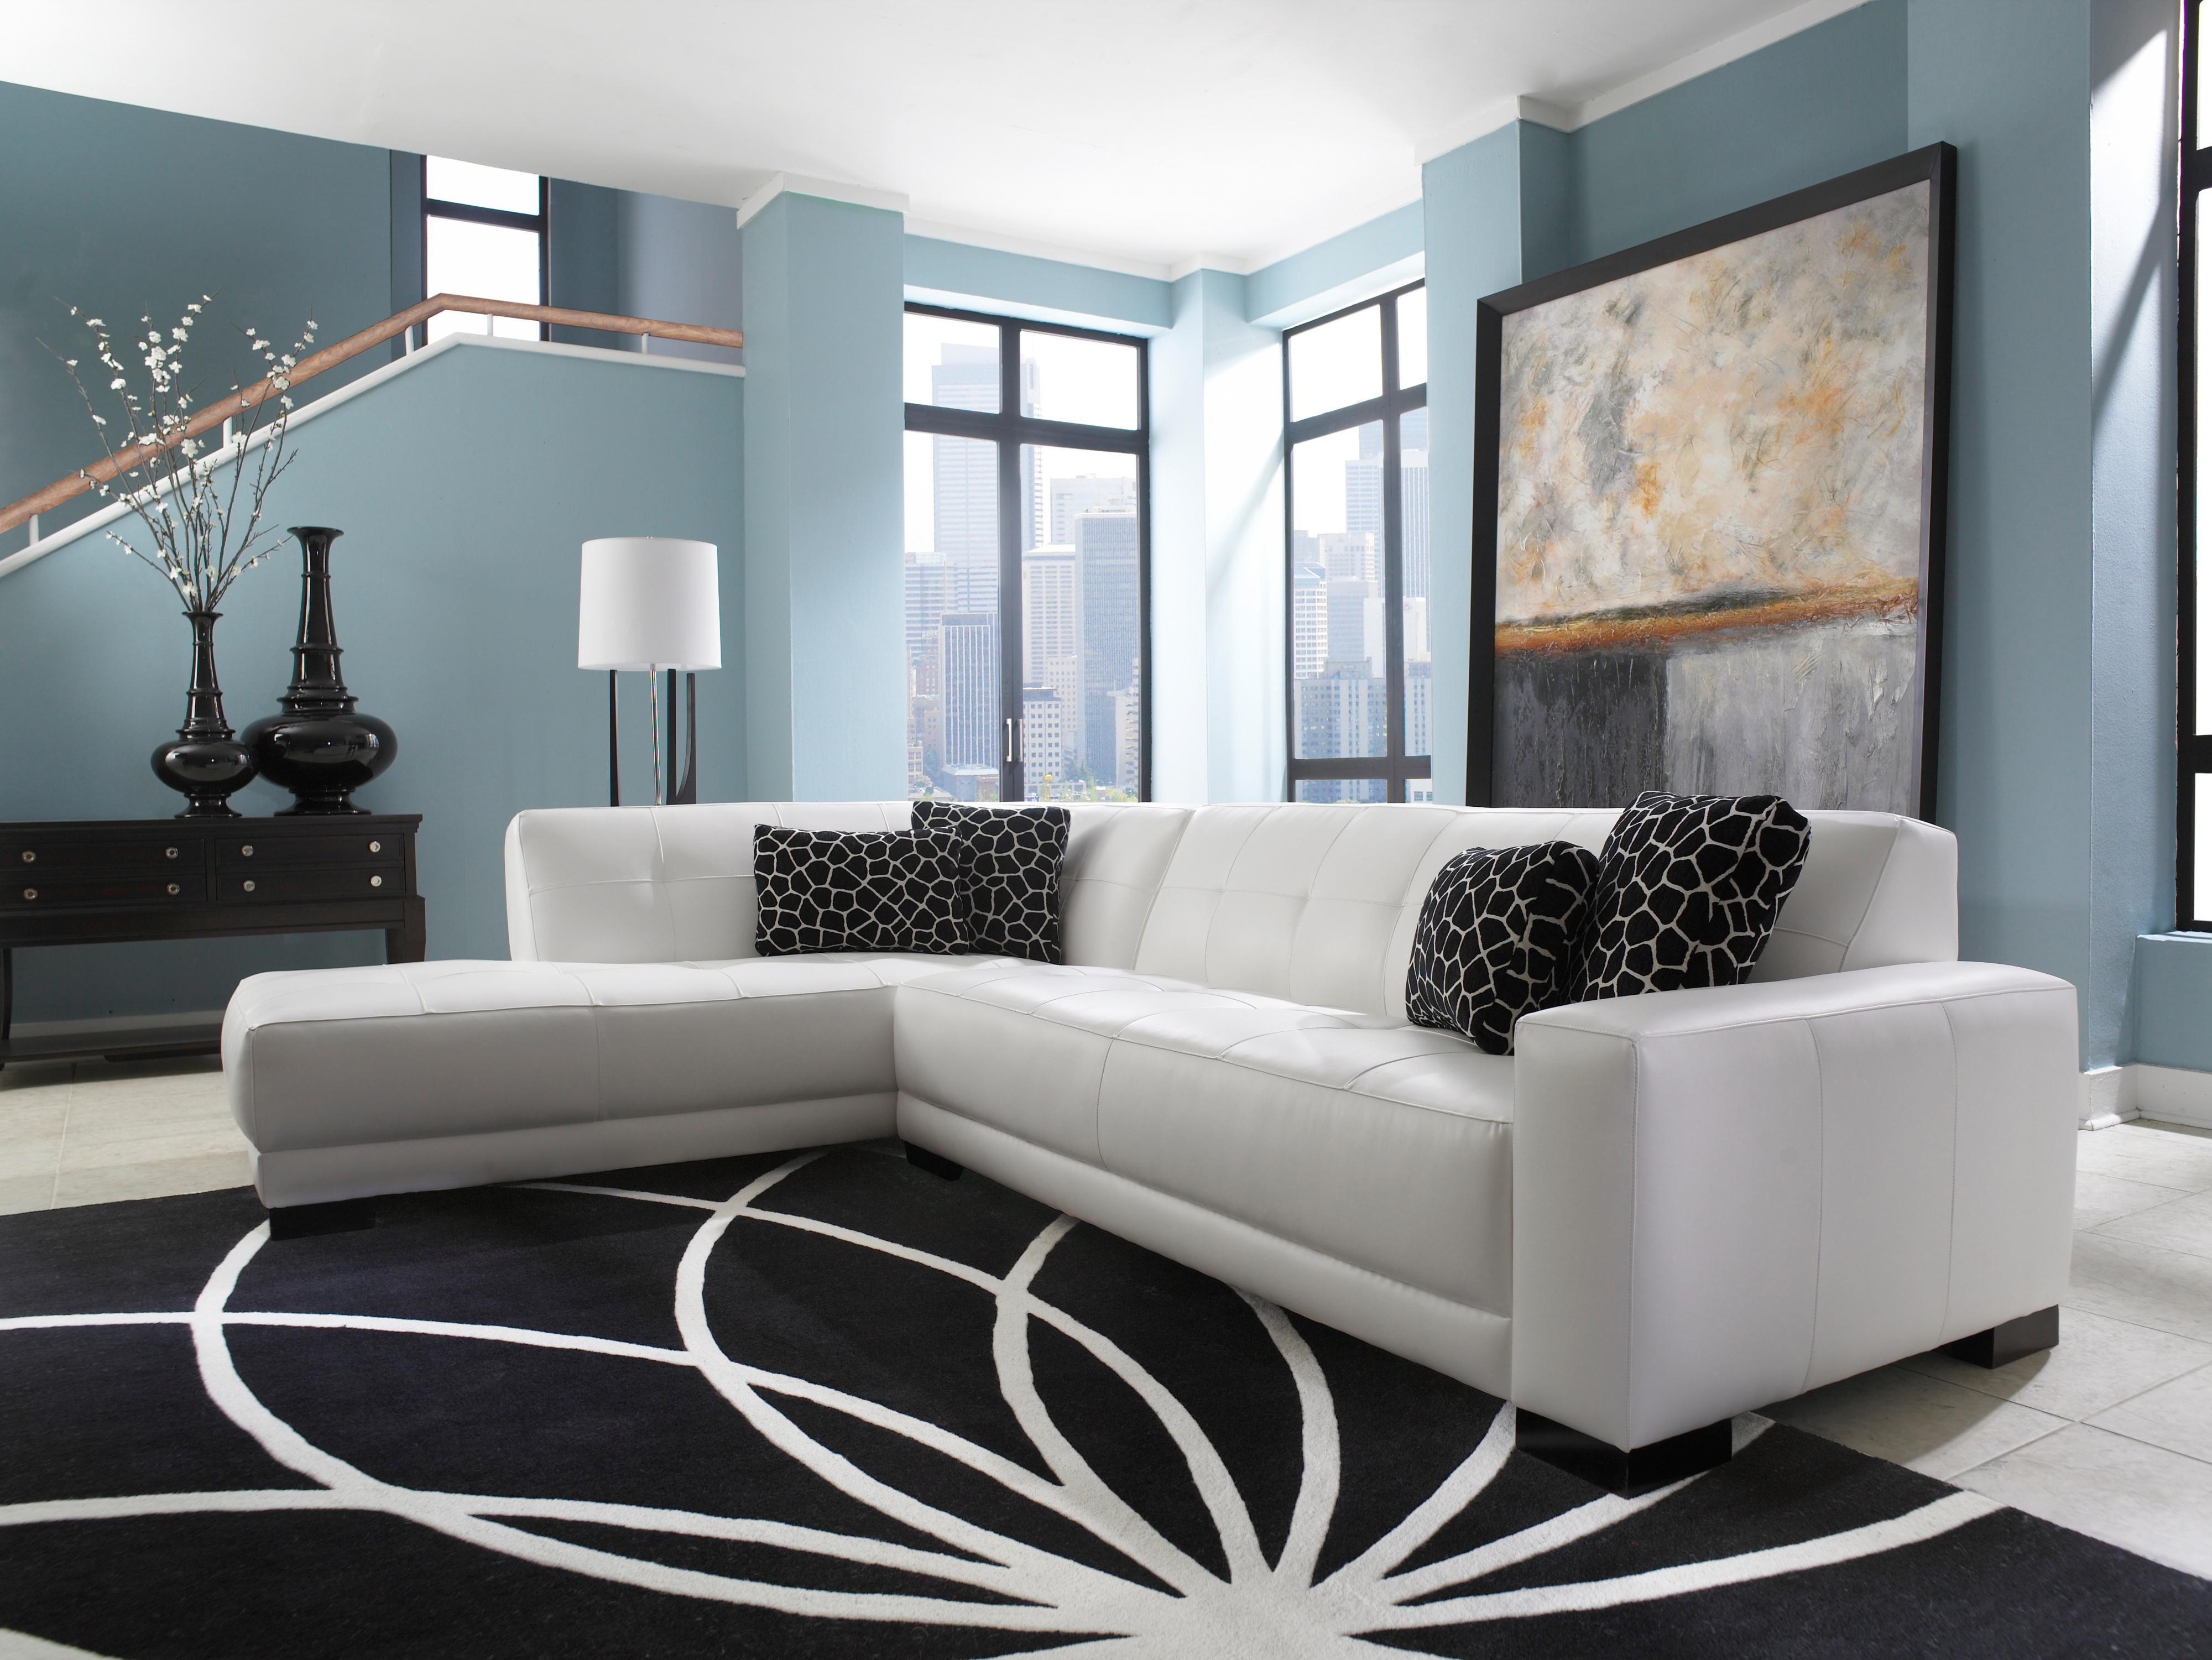 Favorite Bedroom: Exciting Furniture Design With Cozy Dania Furniture Inside Dania Sectional Sofas (View 4 of 20)